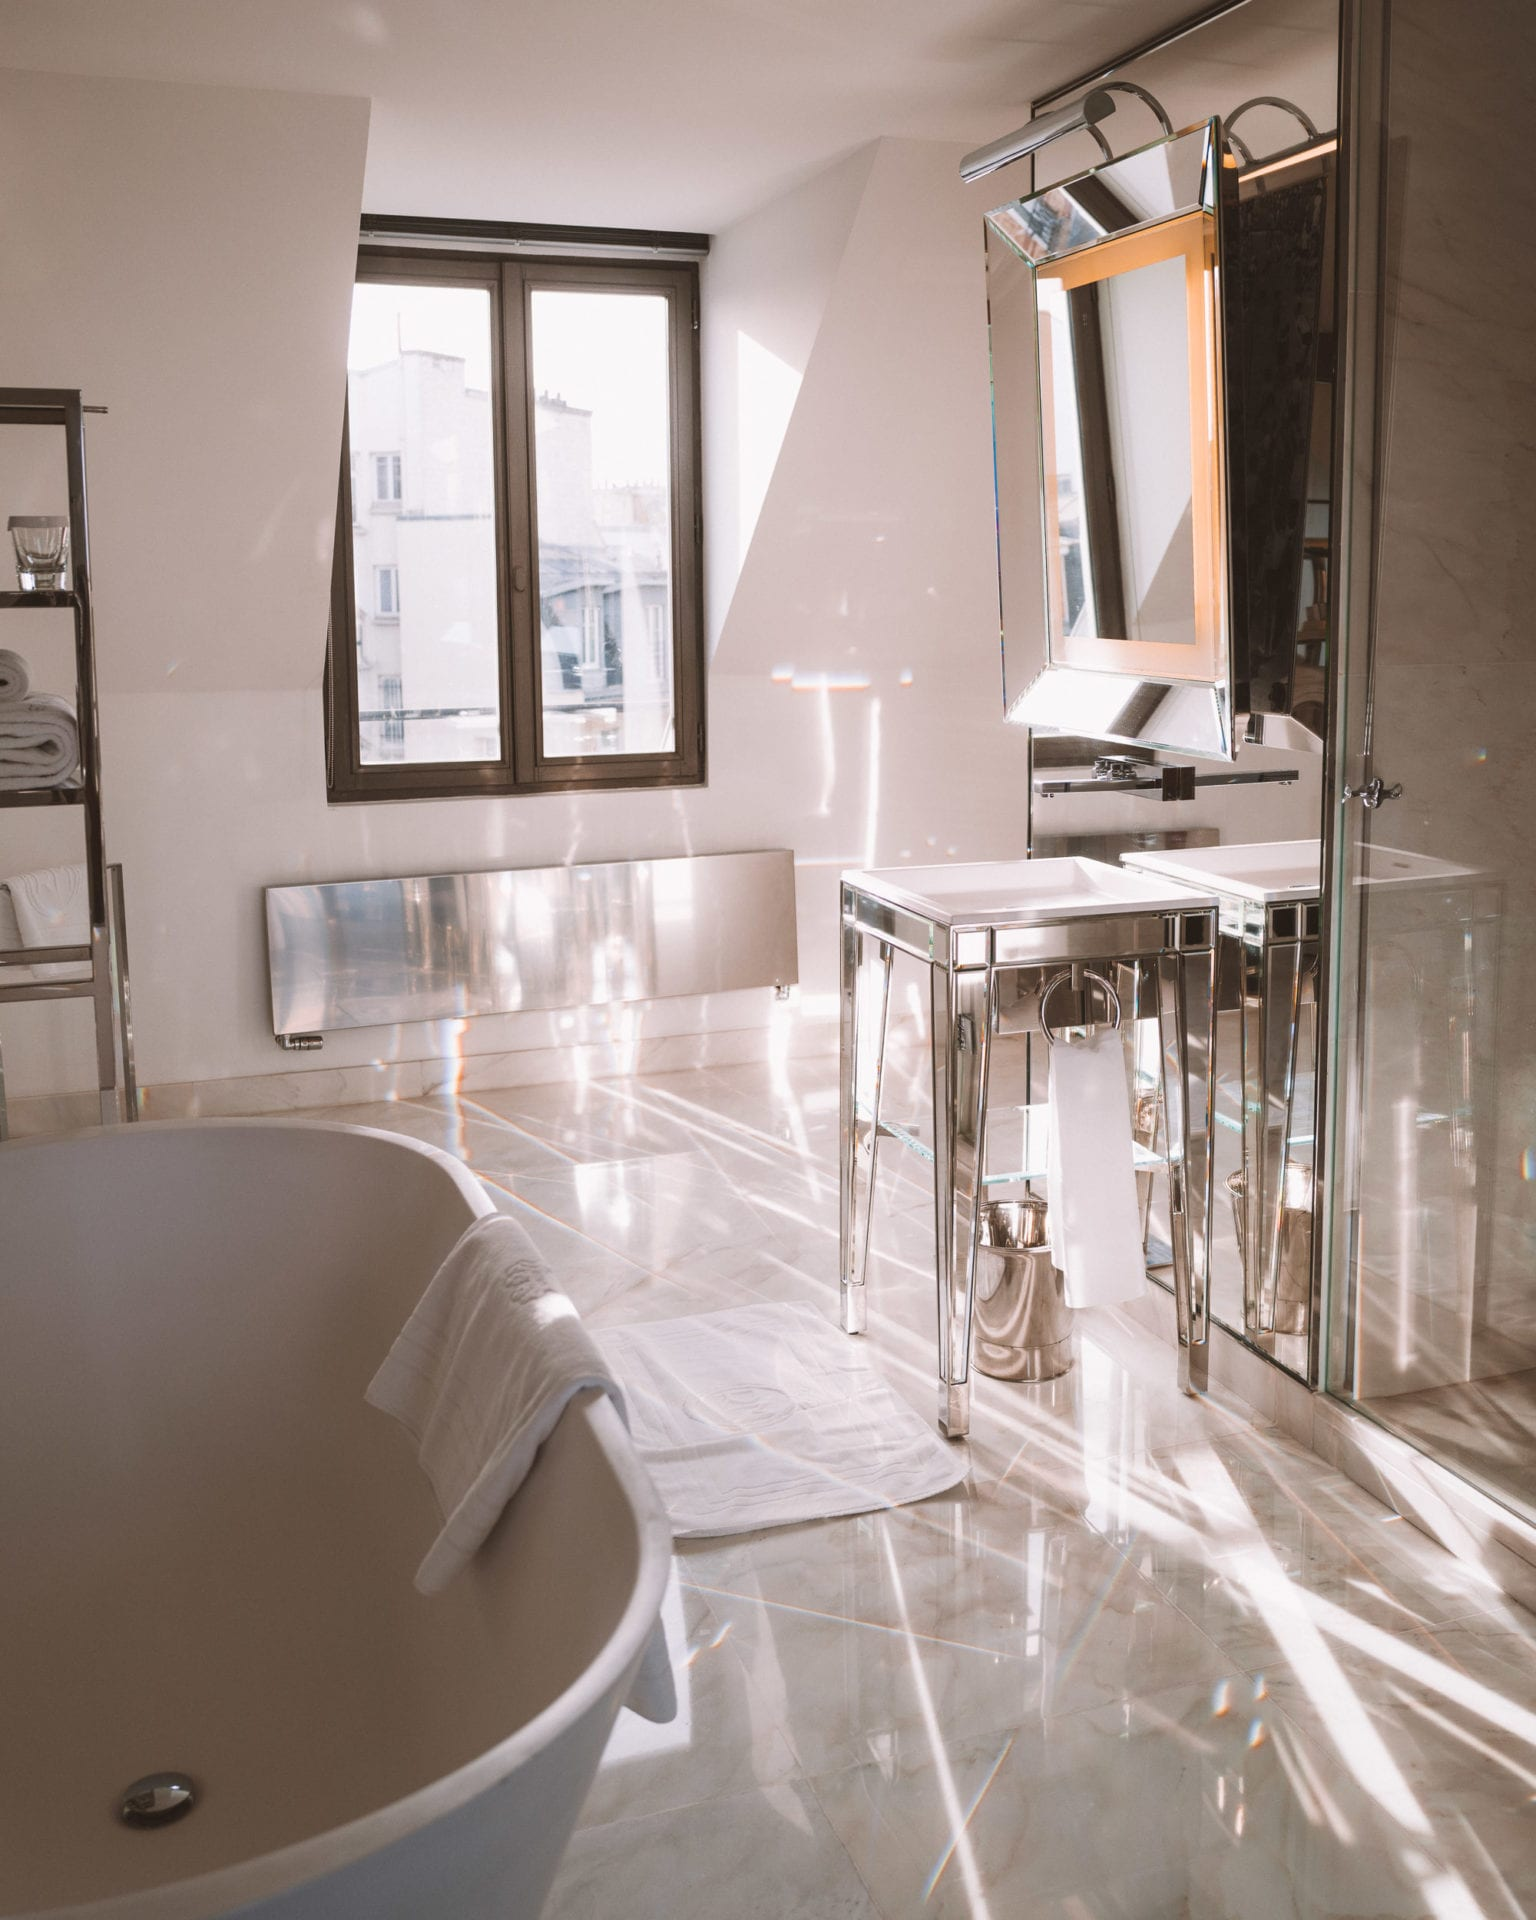 Bathroom at Le Royal Monceau for Valentine's Weekend in Paris France